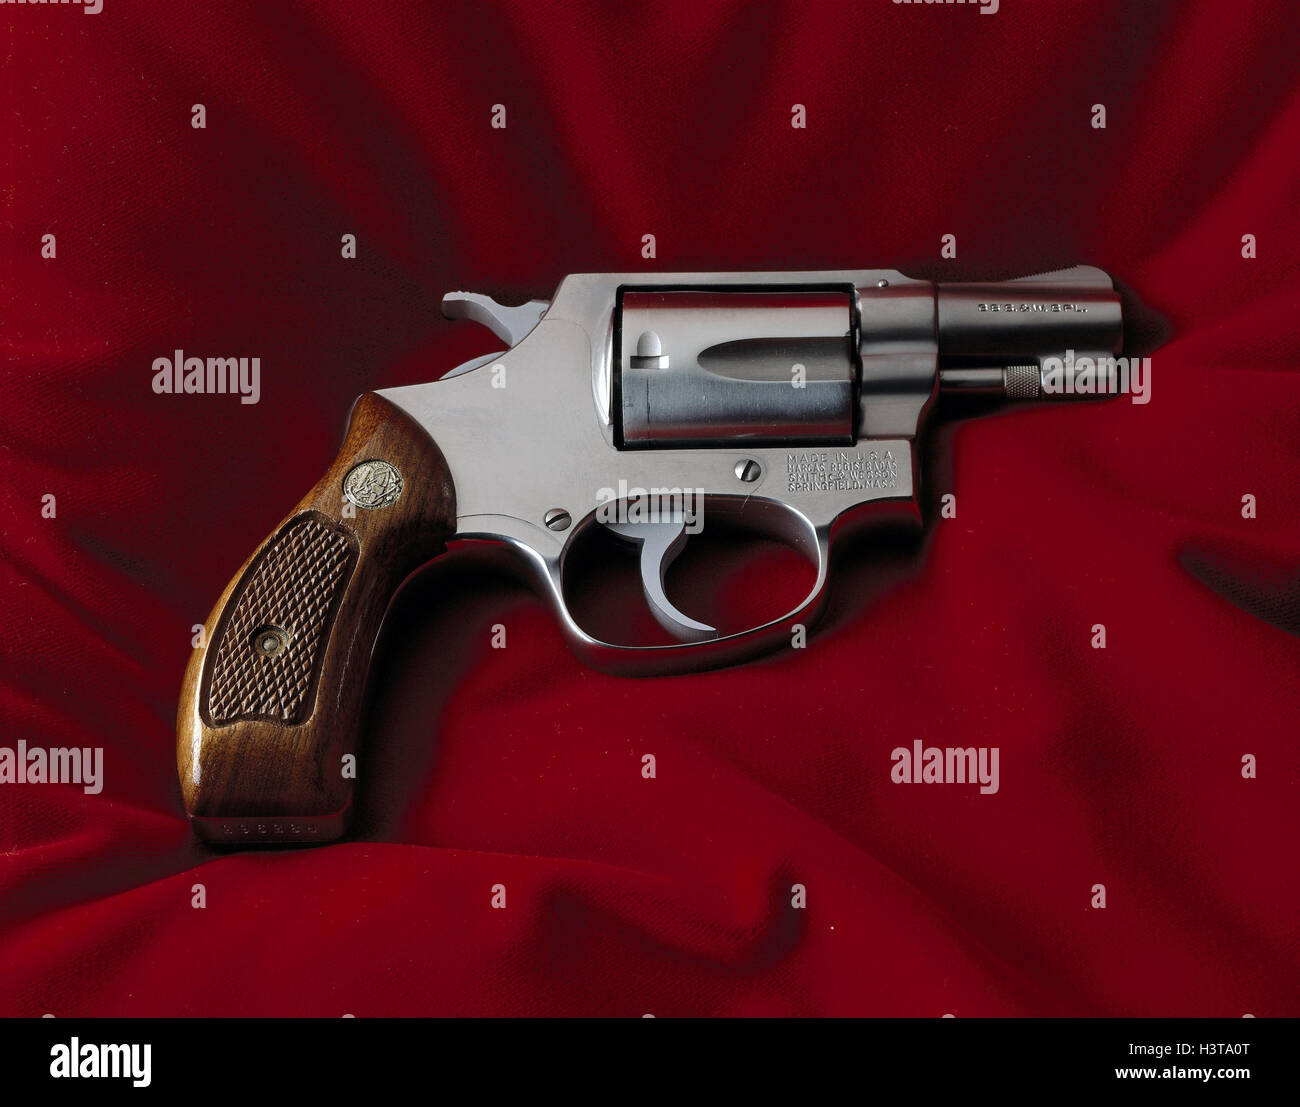 Revolvers, Smith & Wesson colt, 38 Specially, Still life, product photography, weapon, weapons, firearm, fist firearm, Stock Photo